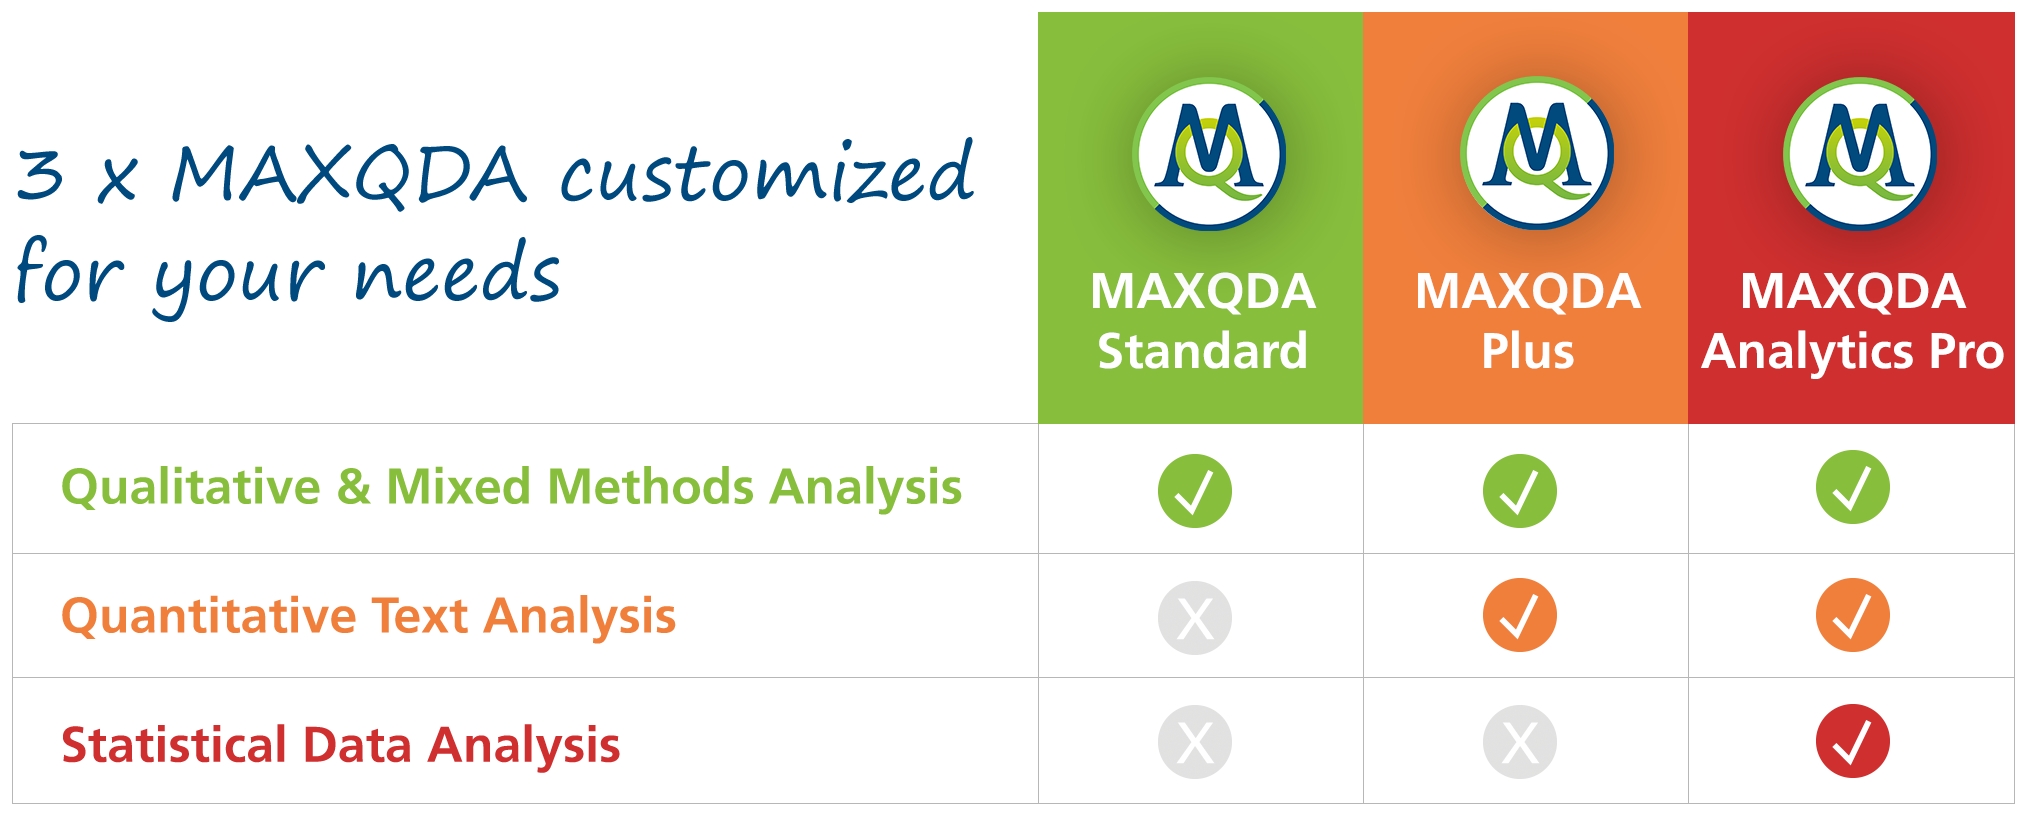 02-MAXQDA-Product-Comparison